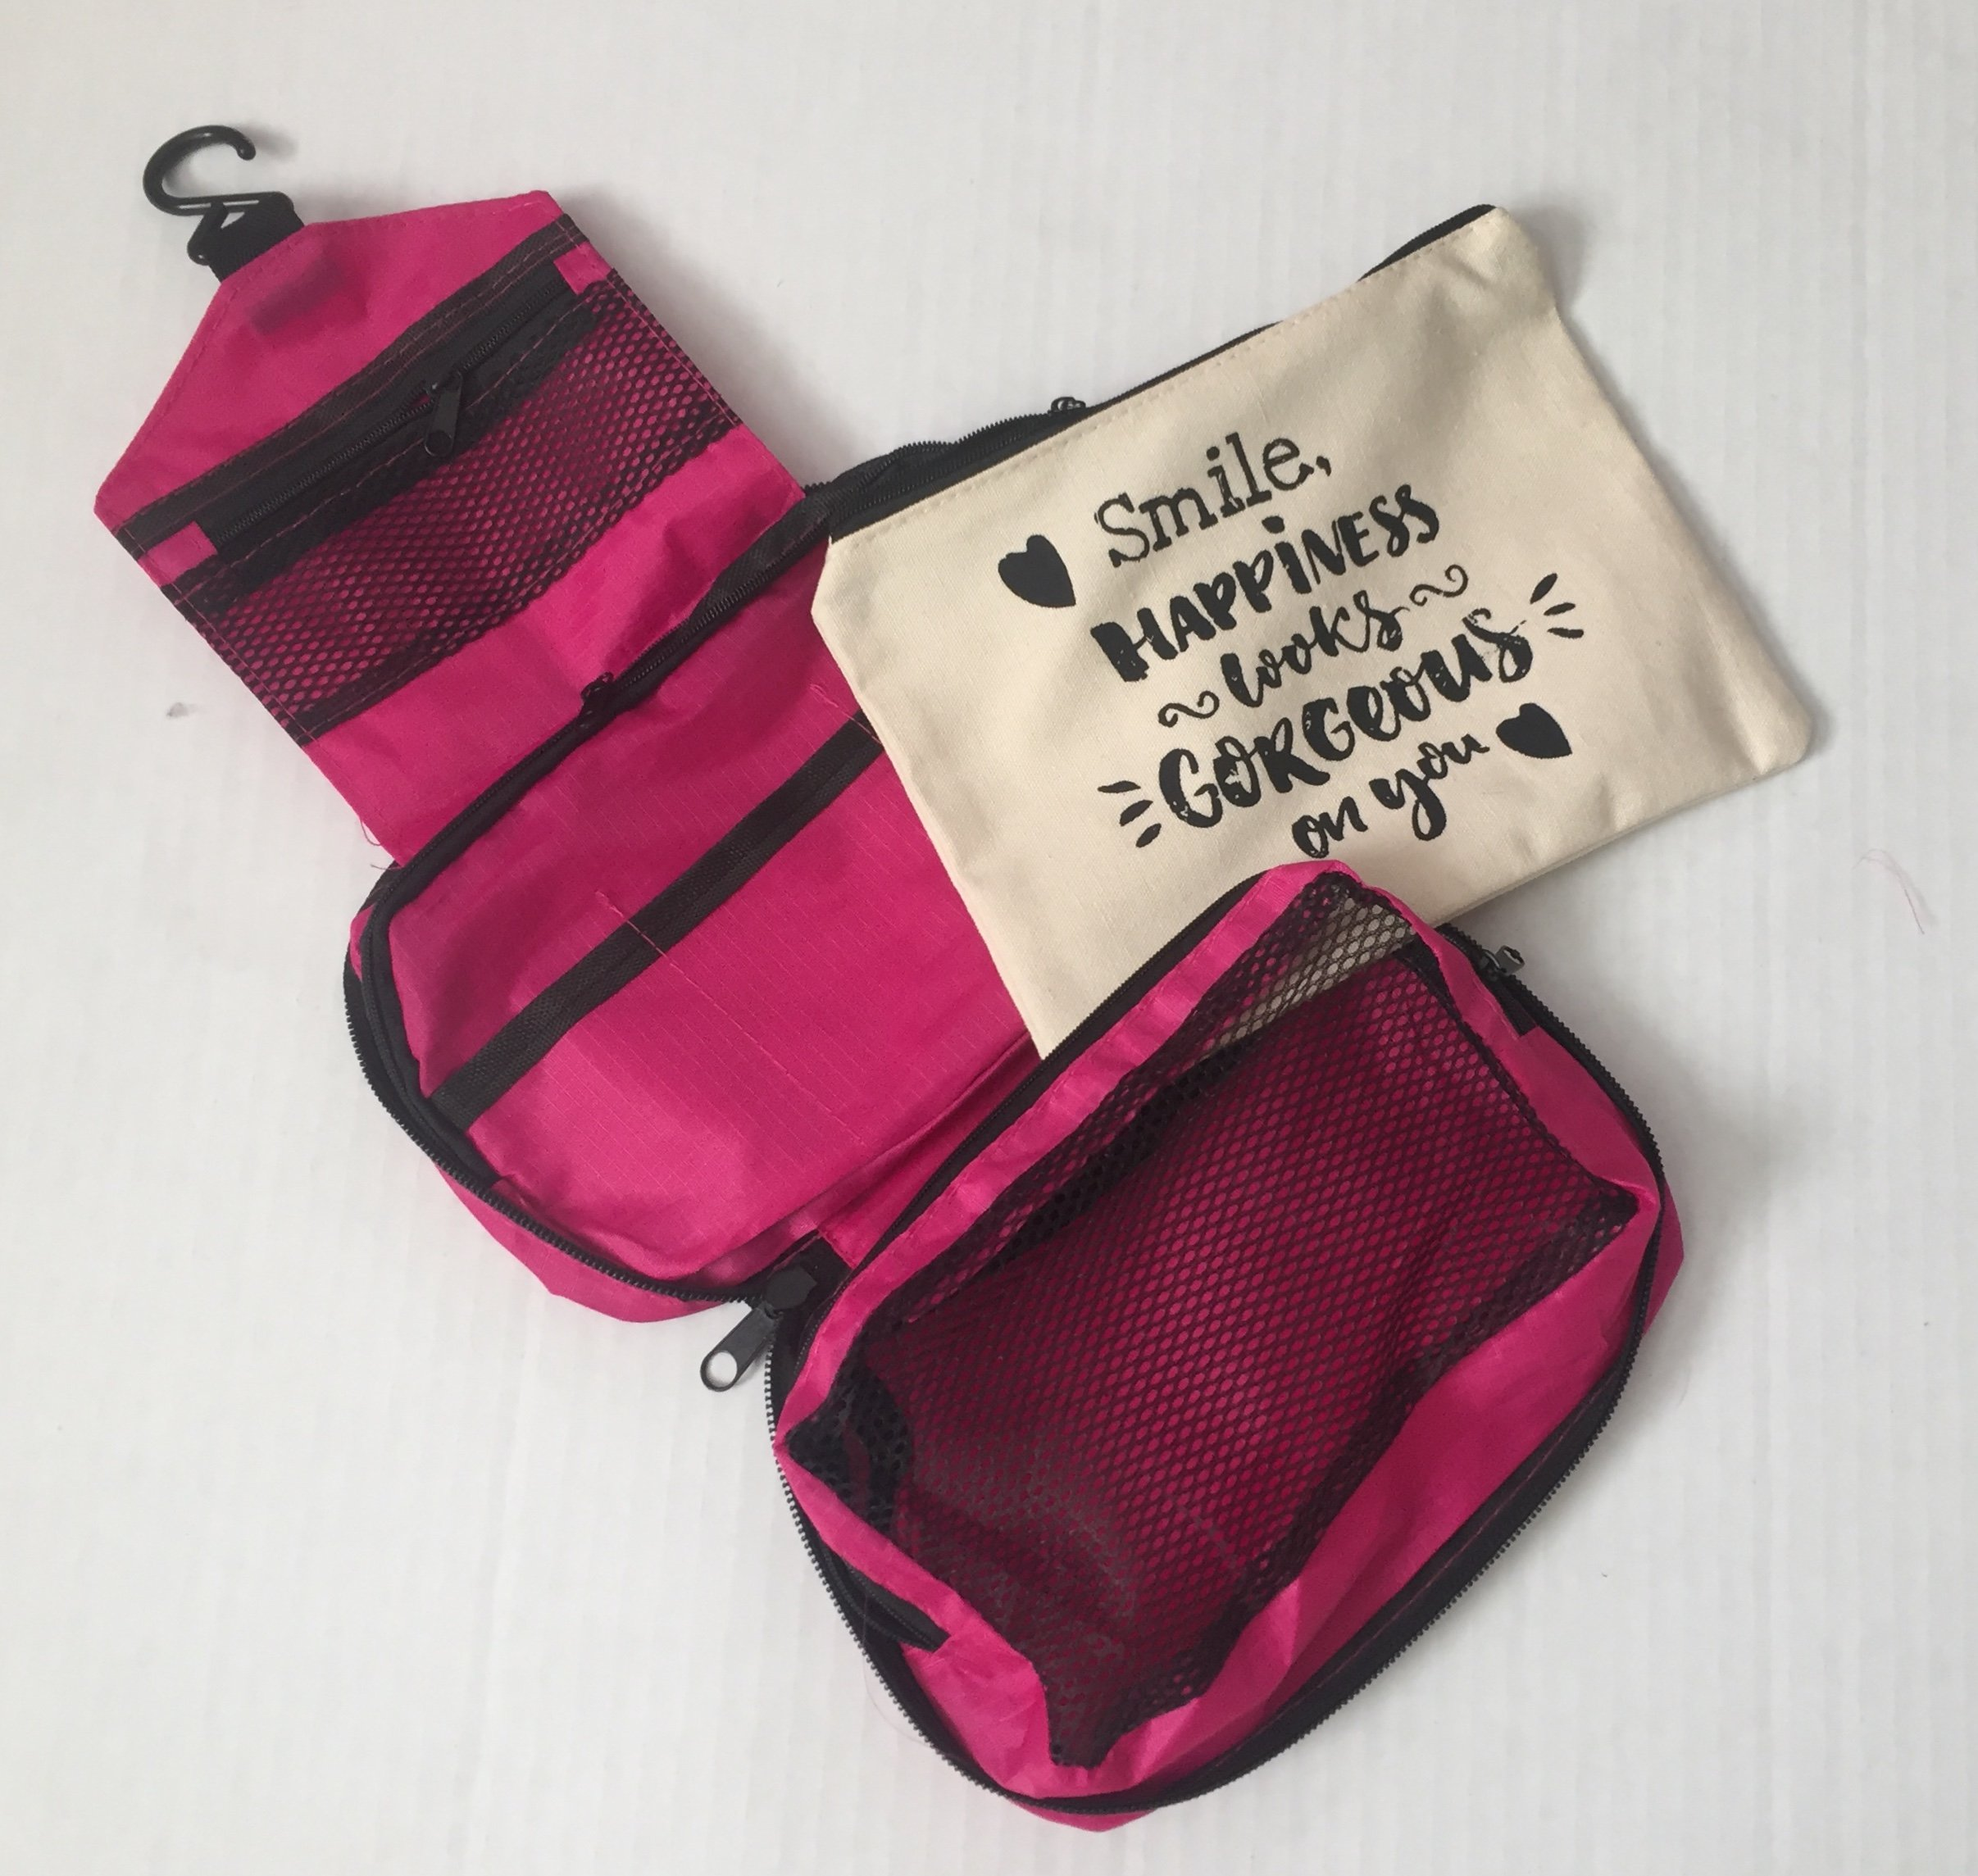 Travel Hanging Toiletries Bag Plus Natural Cotton Canvas Cosmetic Bag With ''Smile! Happiness Looks Gorgeous On You!'' Quote. Set Of 2.